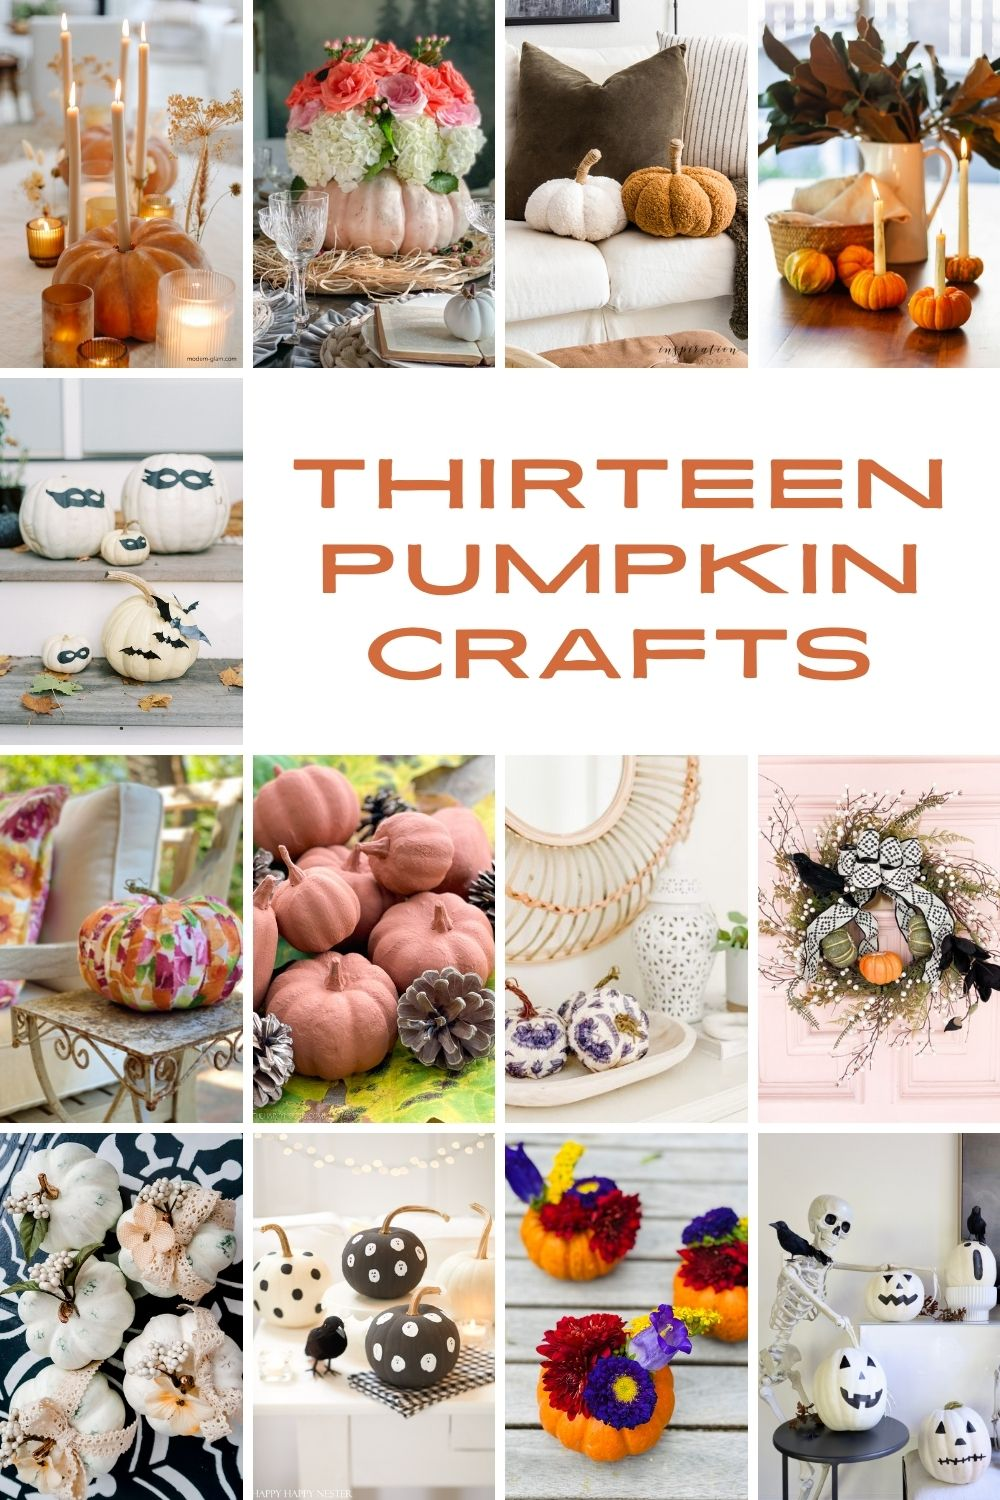 I love easy to make crafts. All you need for these cinderella pumpkin crafts is a plastic pumpkin, fabric, scissors, and glue.